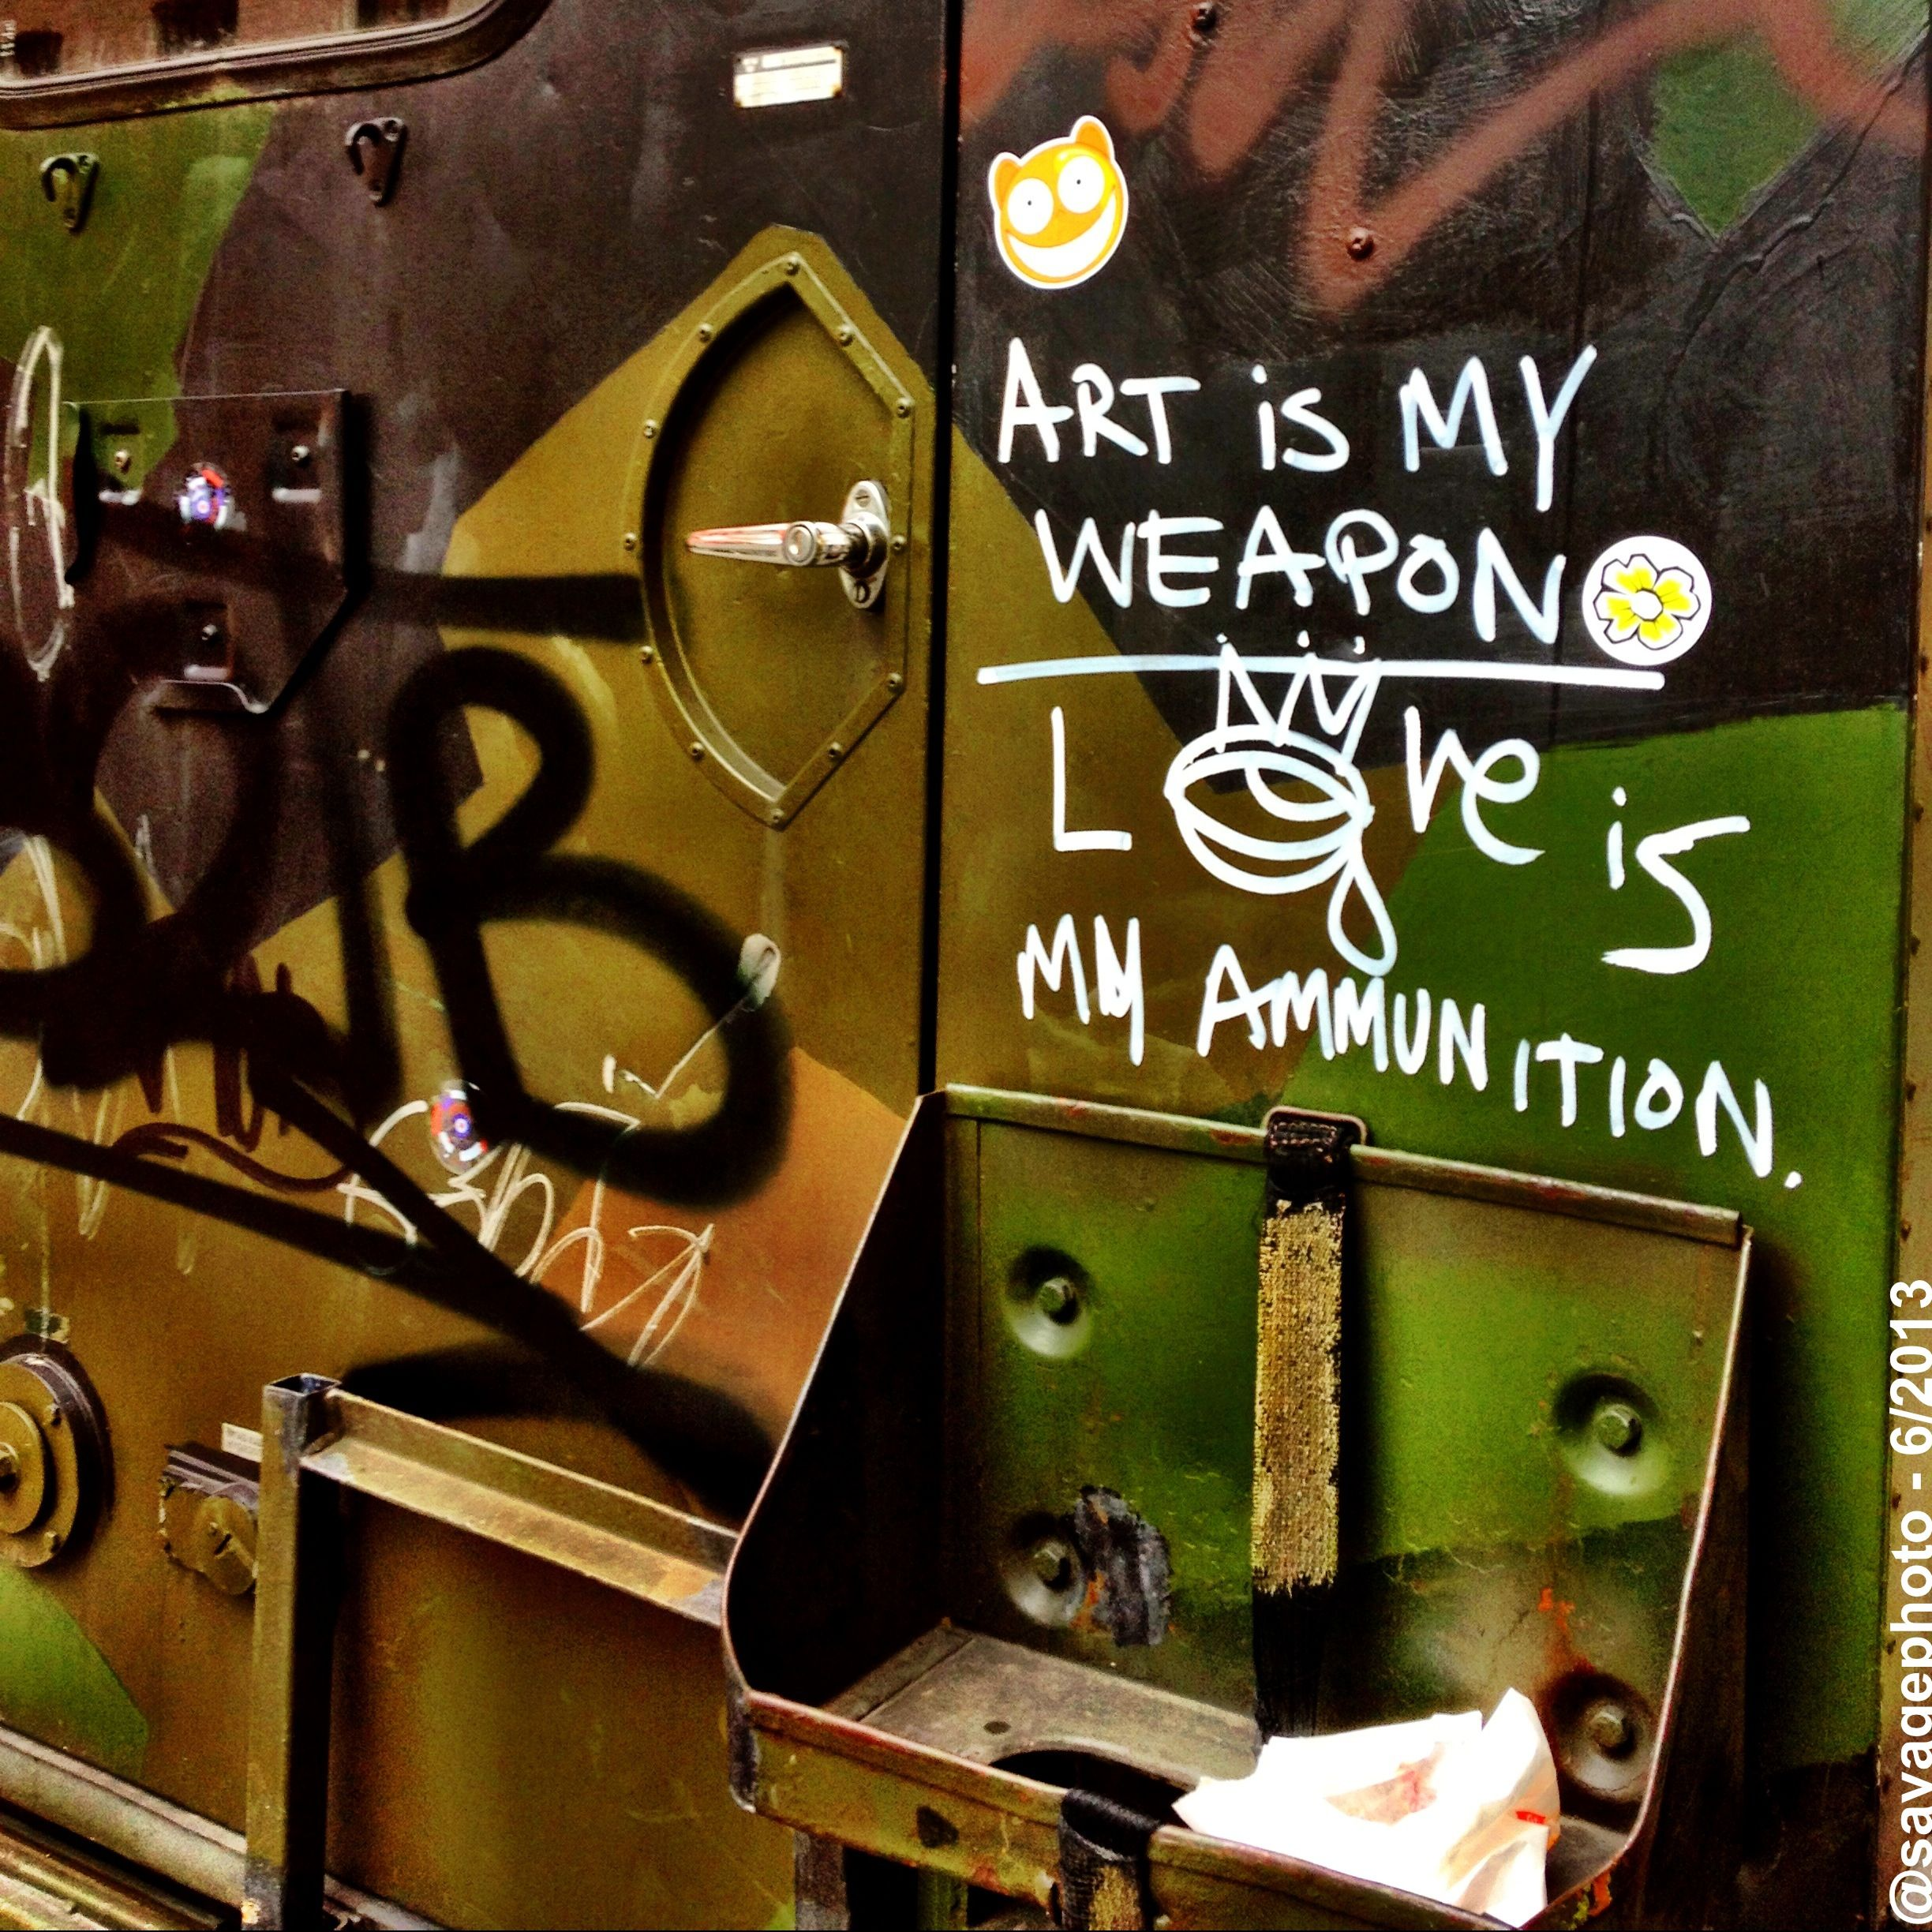 Art is my weapon - Love is my Ammunition - Oslo - Norway (Norge)